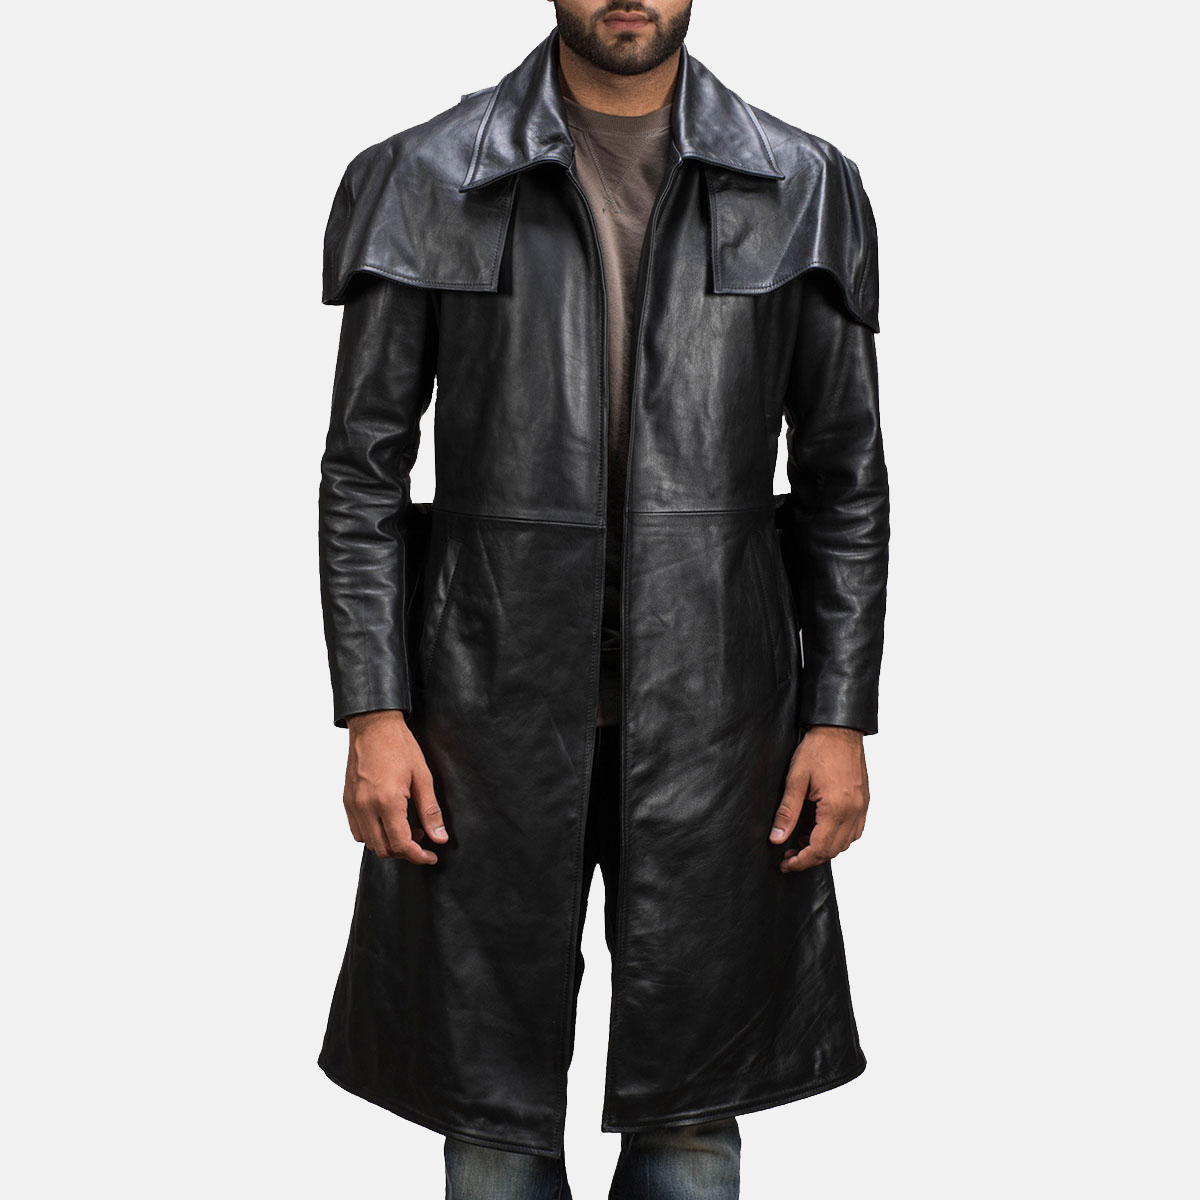 Mens Black Leather Duster Made Of Premium Cowhide Leather 1